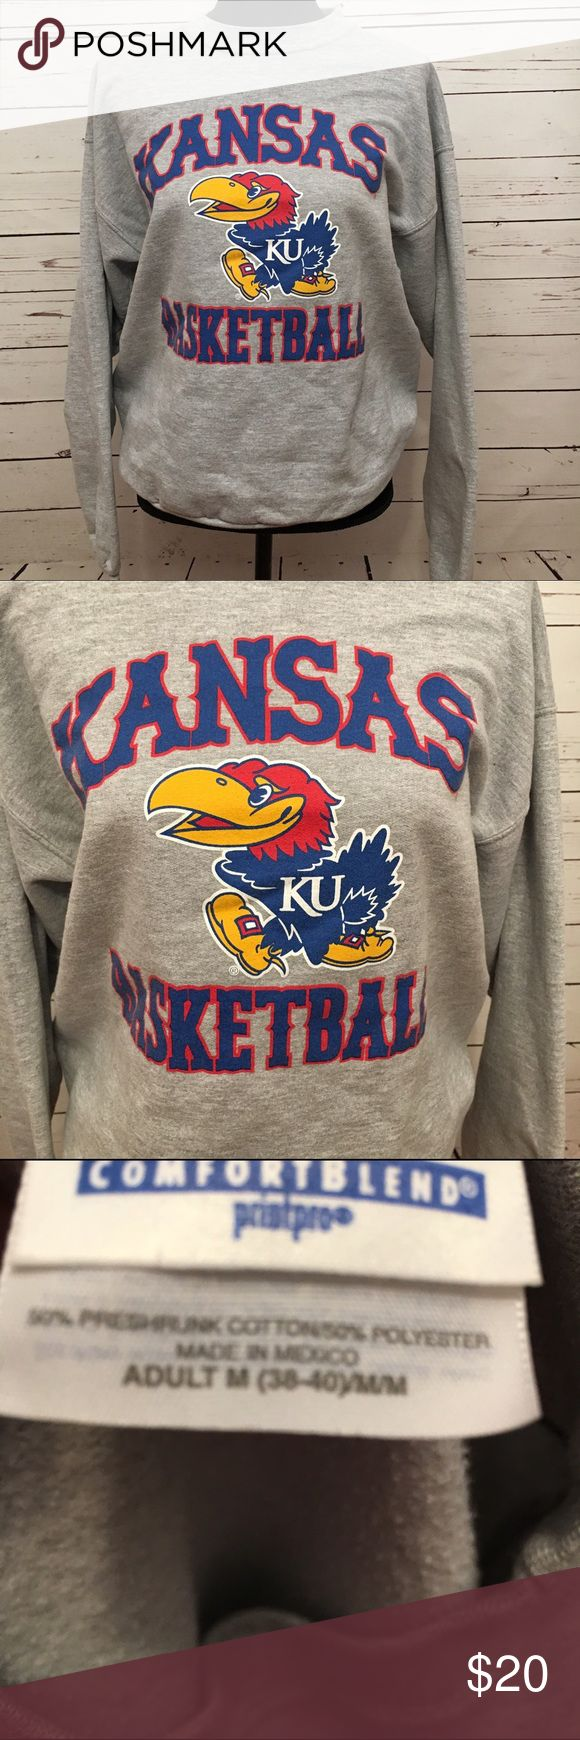 Kansas university basketball sweatshirt medium Kansas university medium basketball sweatshirt in good used condition. Super soft. 22 arm to arm and 26 shoulder to hem. basketball Tops Sweatshirts & Hoodies